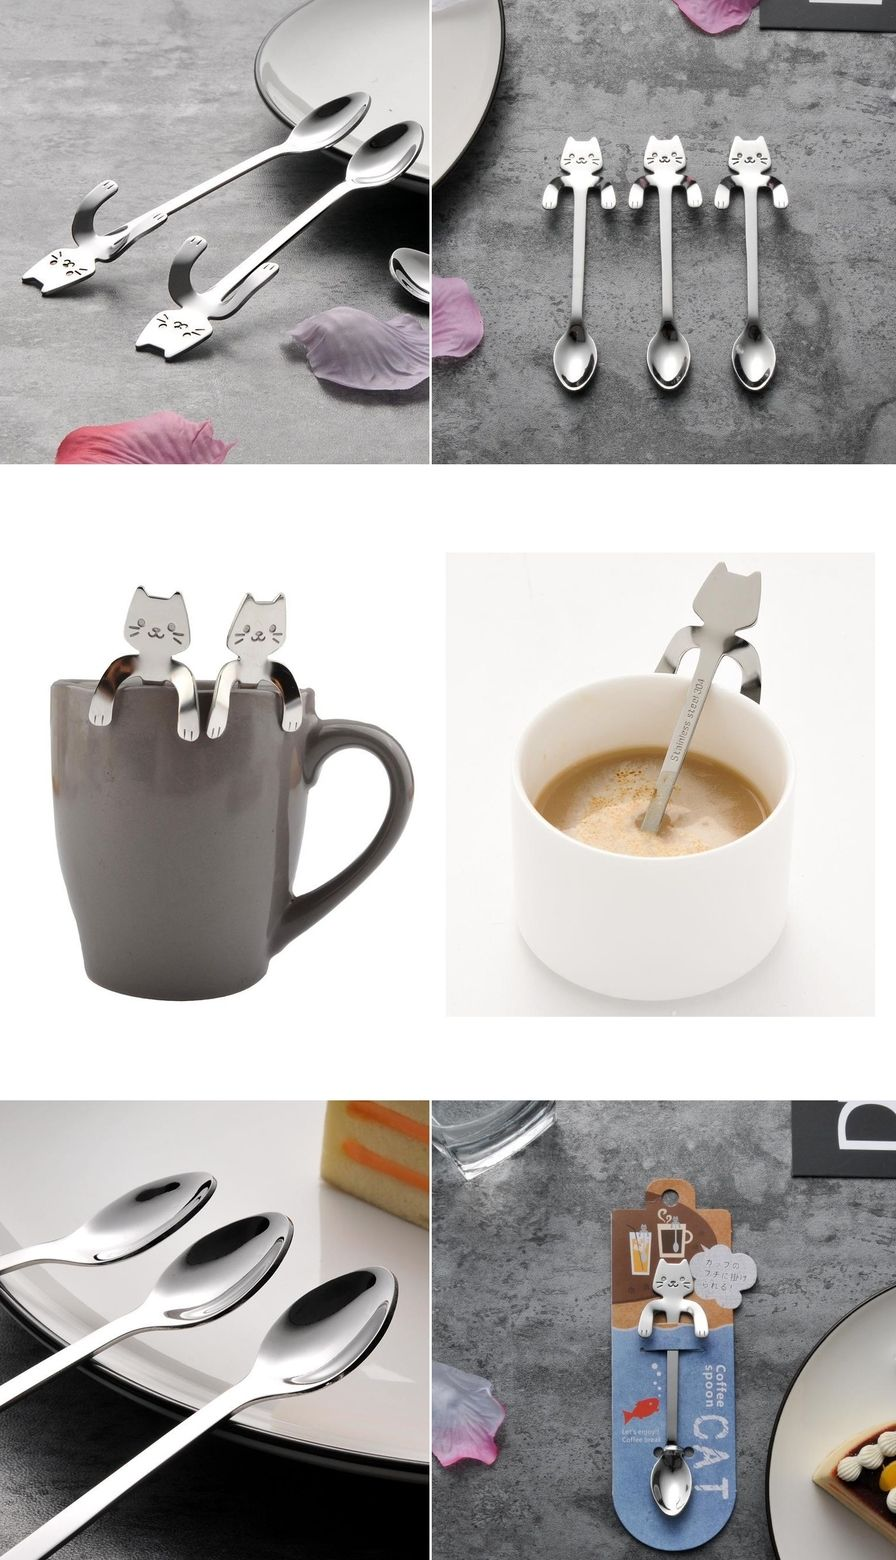 if you like cats and home decoration then these stainless steel